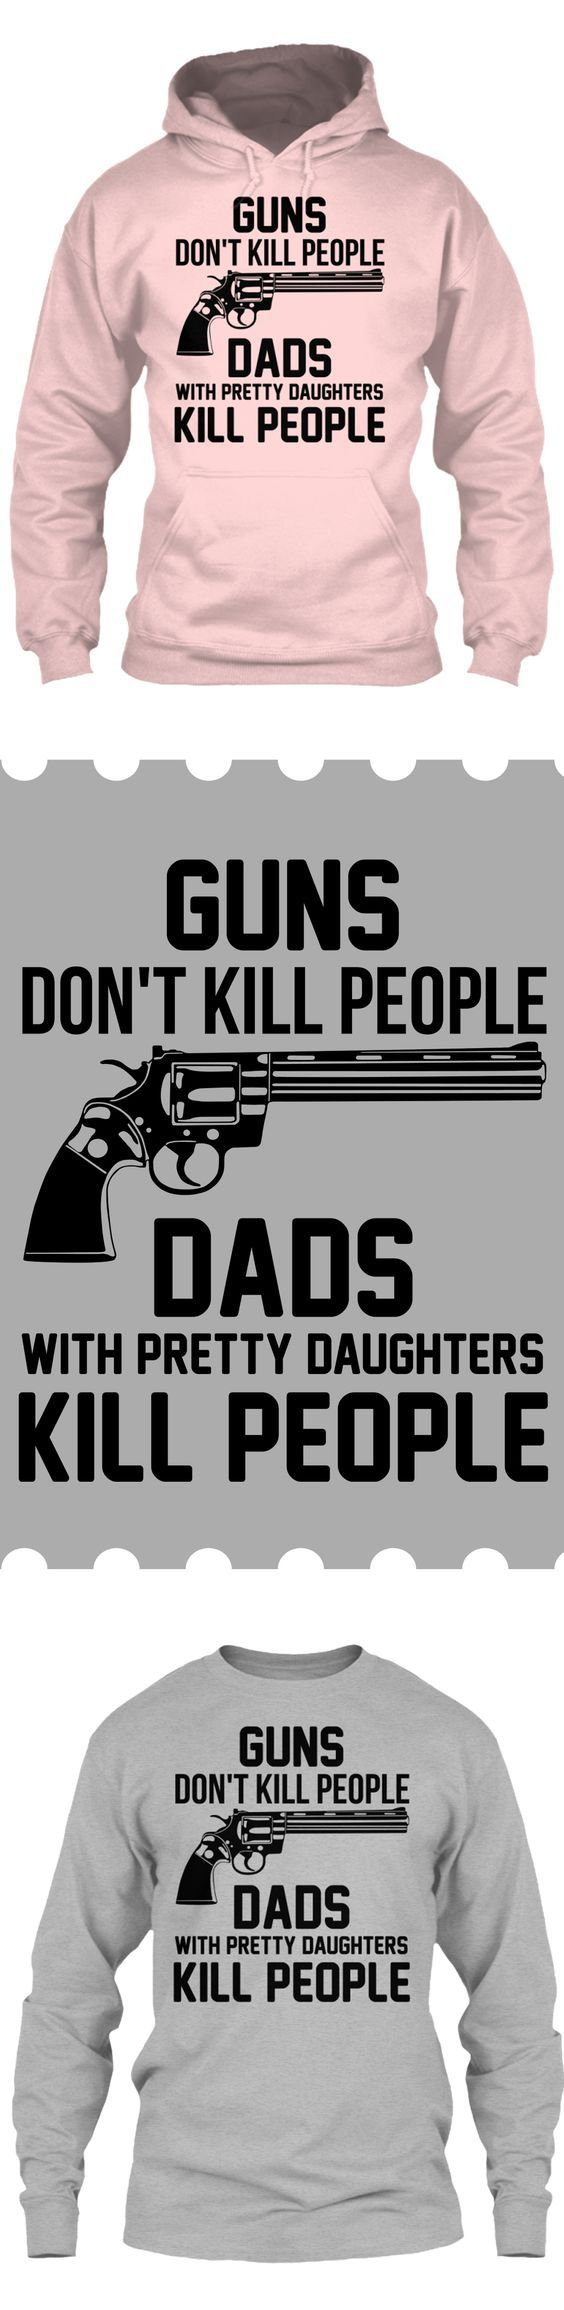 Guns Don T Kill People Get This Limited Edition Long Sleeves And Hoodies Just In Time For The Holidays Only 2 Days Funny Quotes Funny Guns Dont Kill People